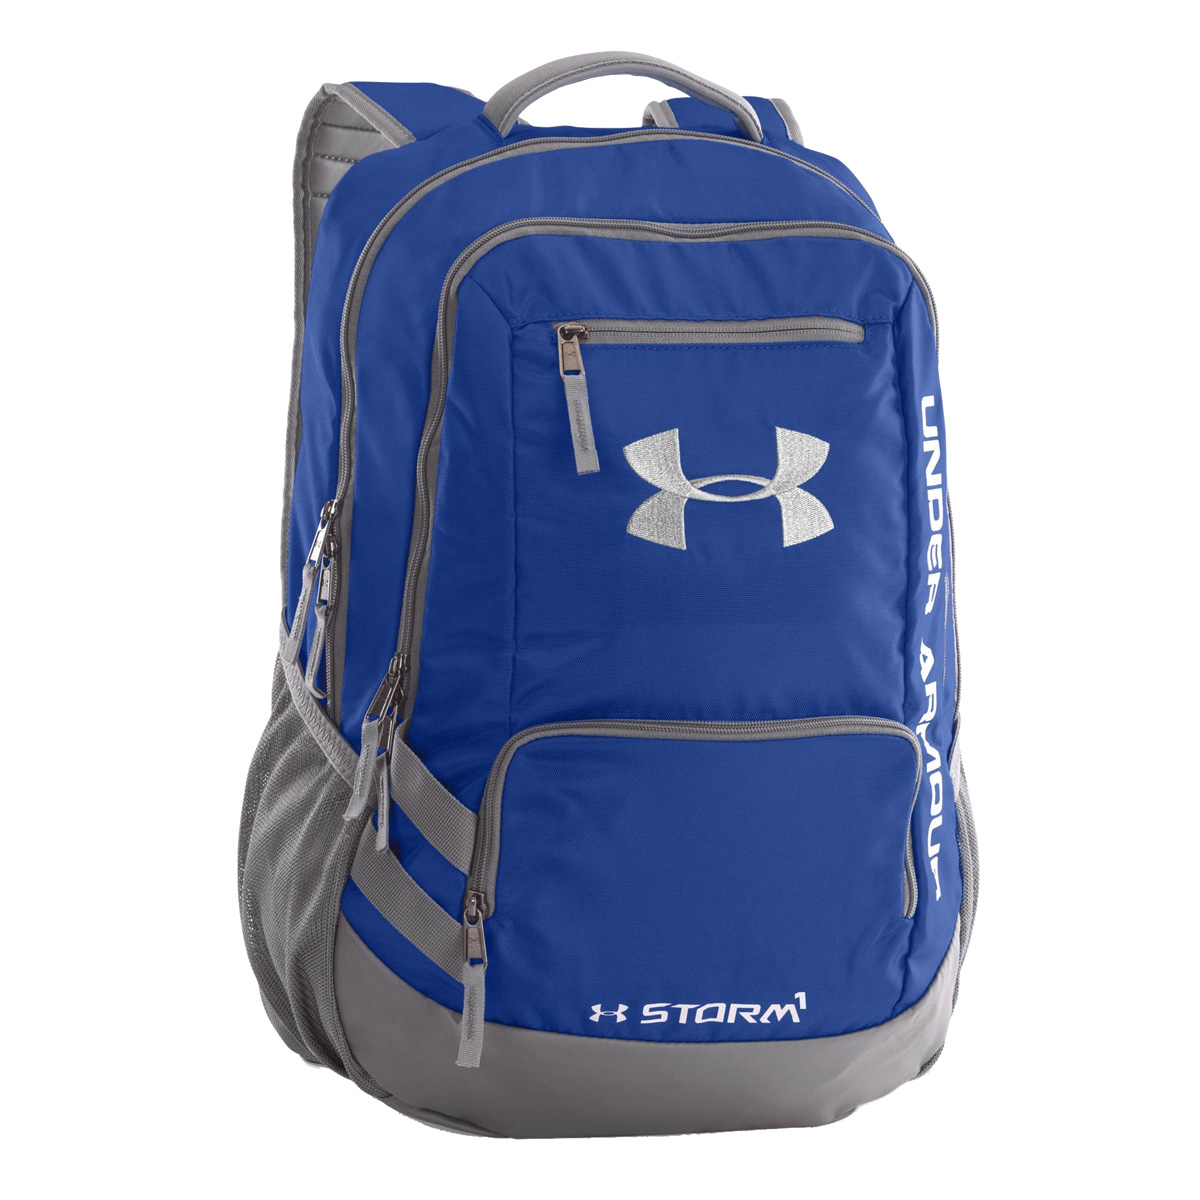 Enjoy FREE SHIPPING on Under Armour backpacks and bags at eBags - experts in bags and accessories since By athletes for athletes.